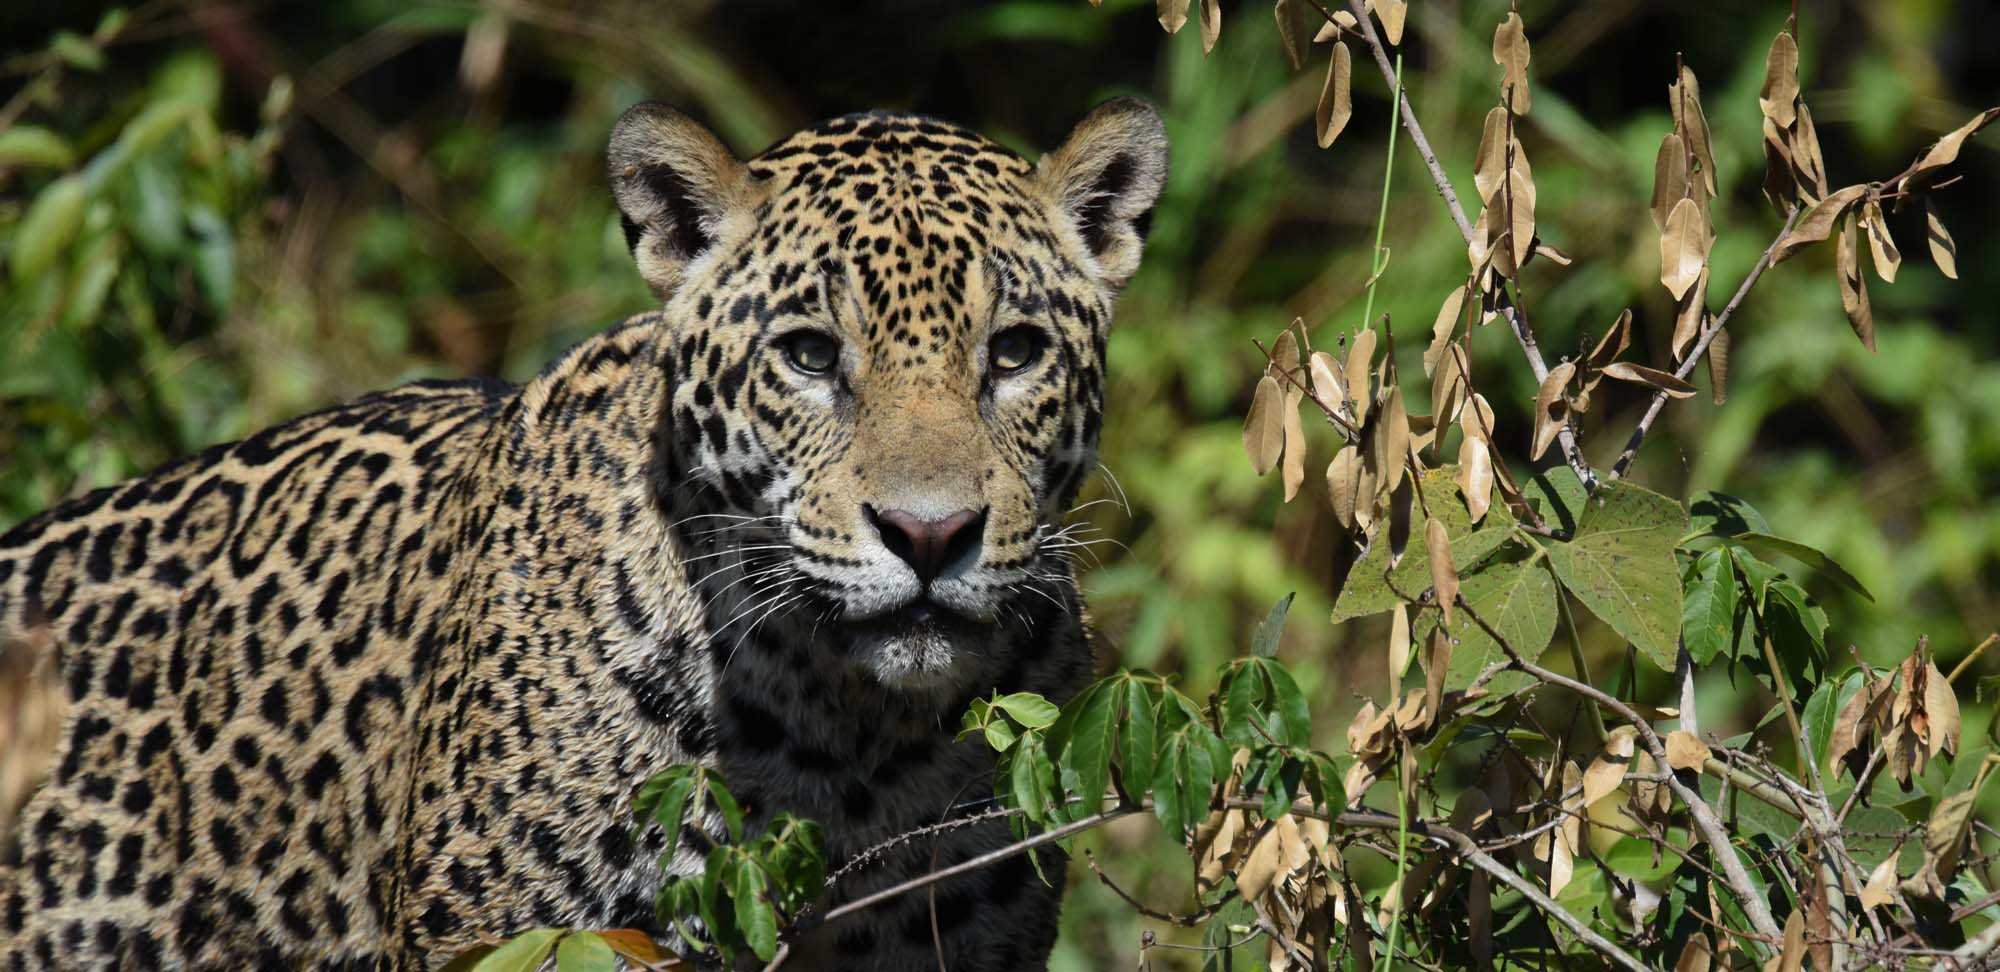 Jaguar Field Guides Birding Tours Brazil